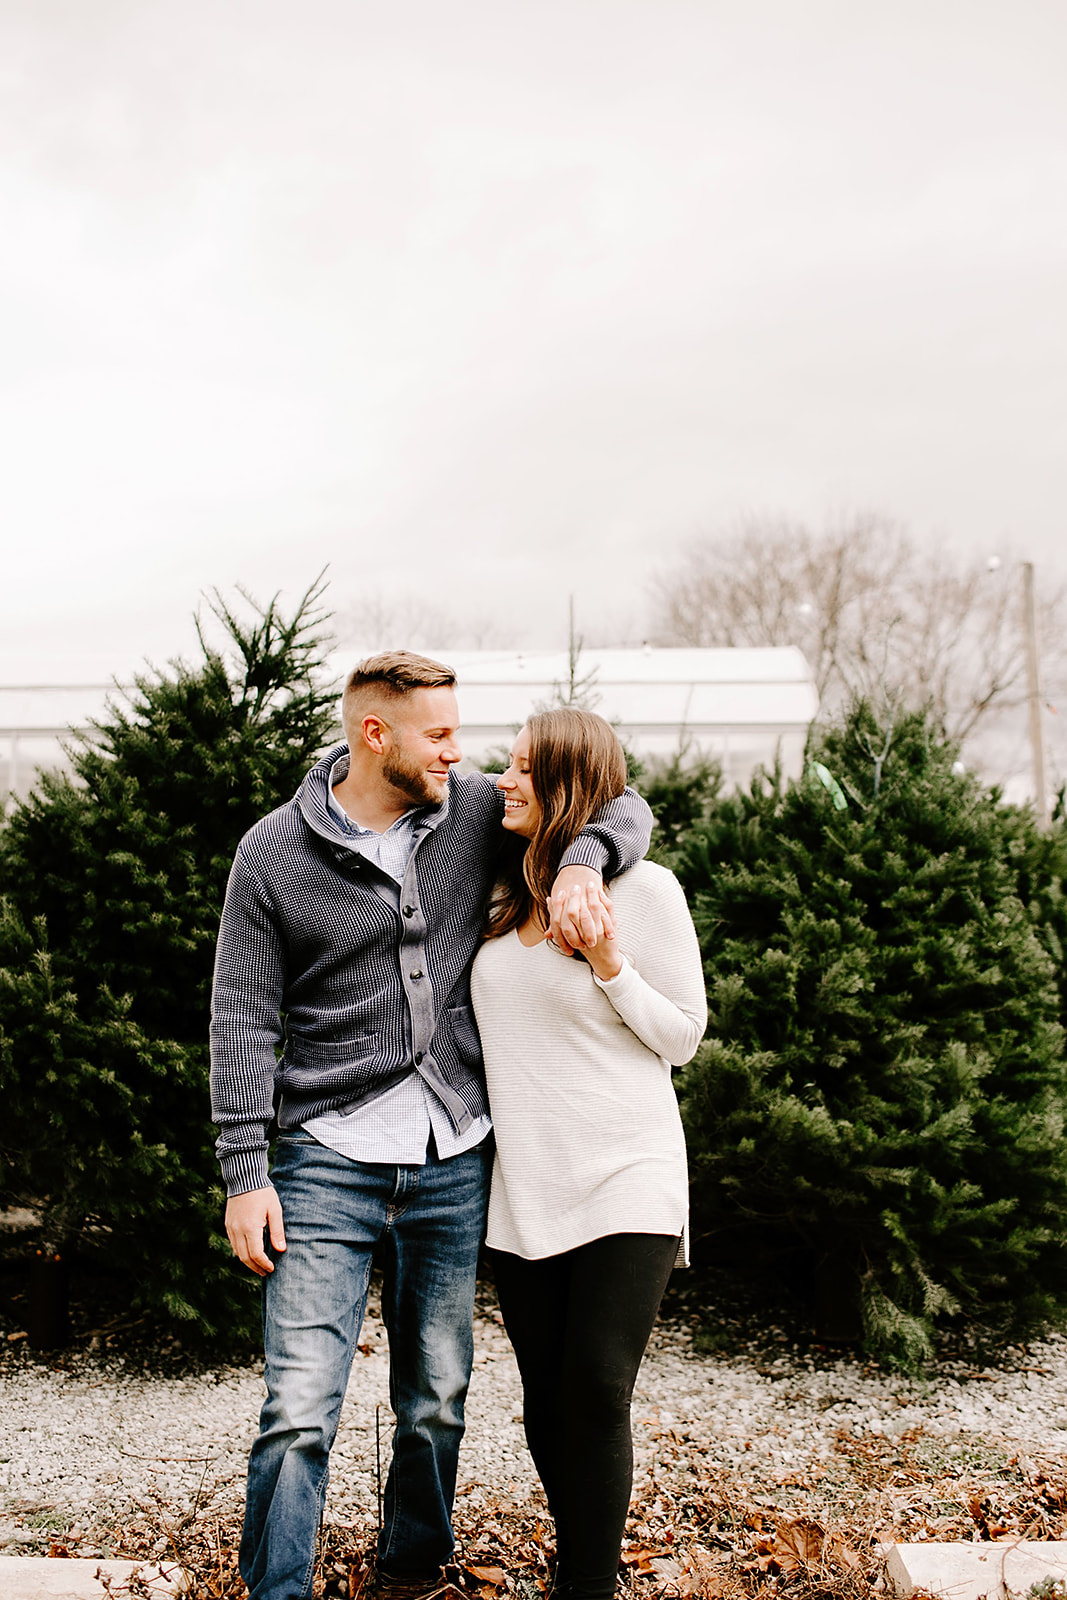 Holly and Michael Engagement Session in Noblesville Indiana by Emily Elyse Wehner Photography LLC-38.jpg